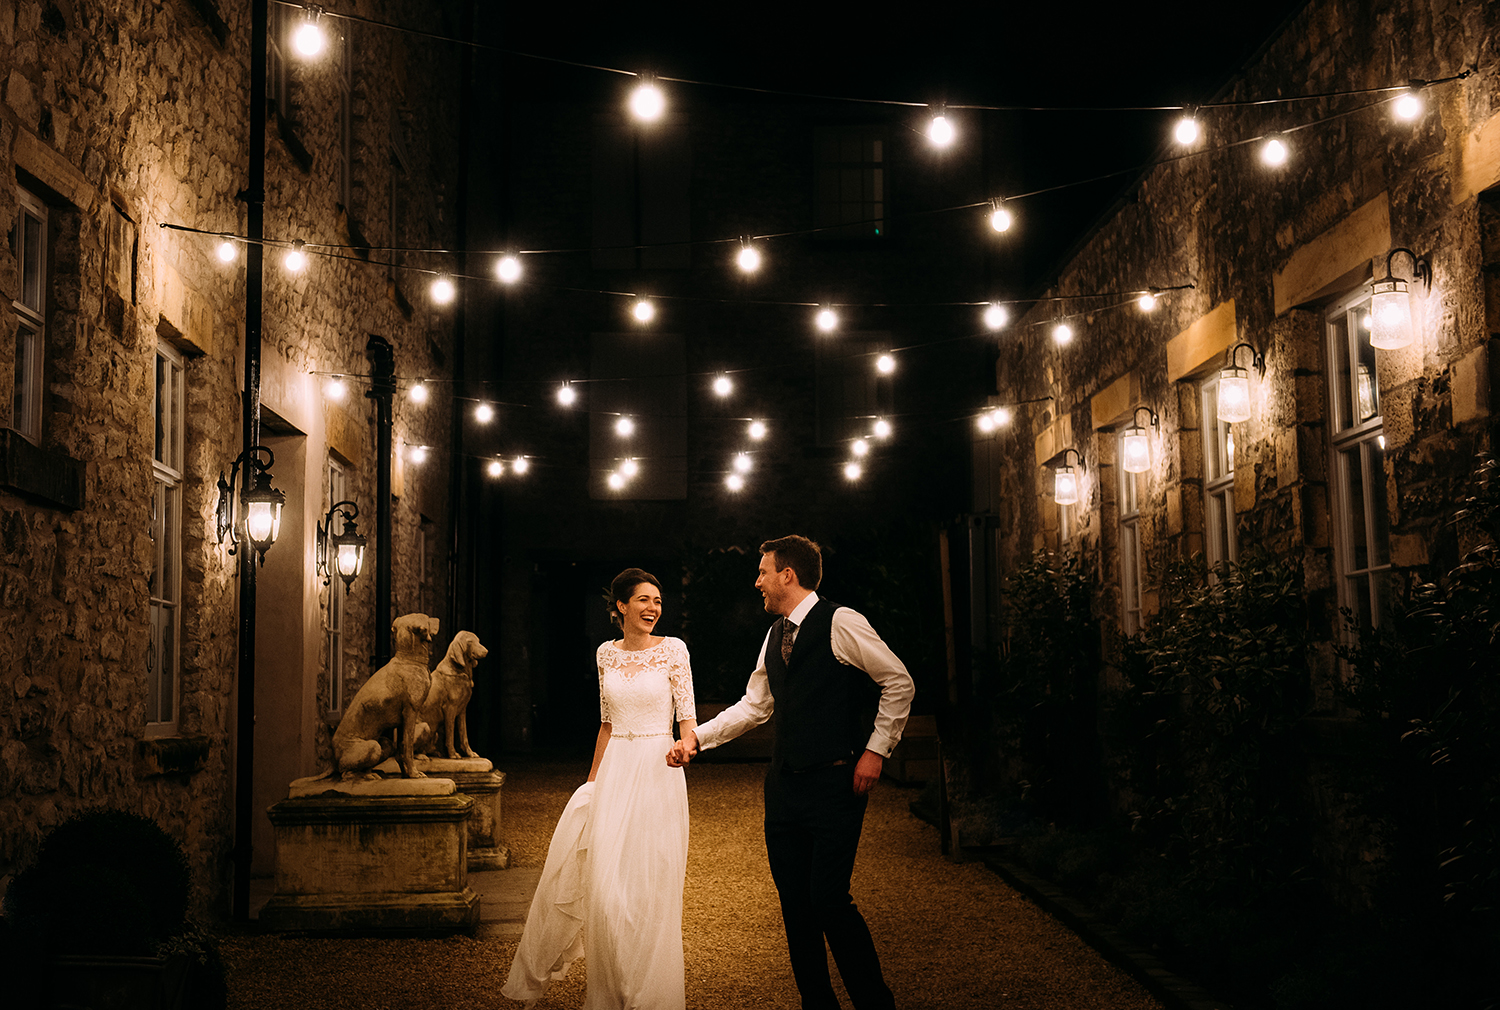 relaxed photo of the bride and groom having a stroll at night under the festoon lights